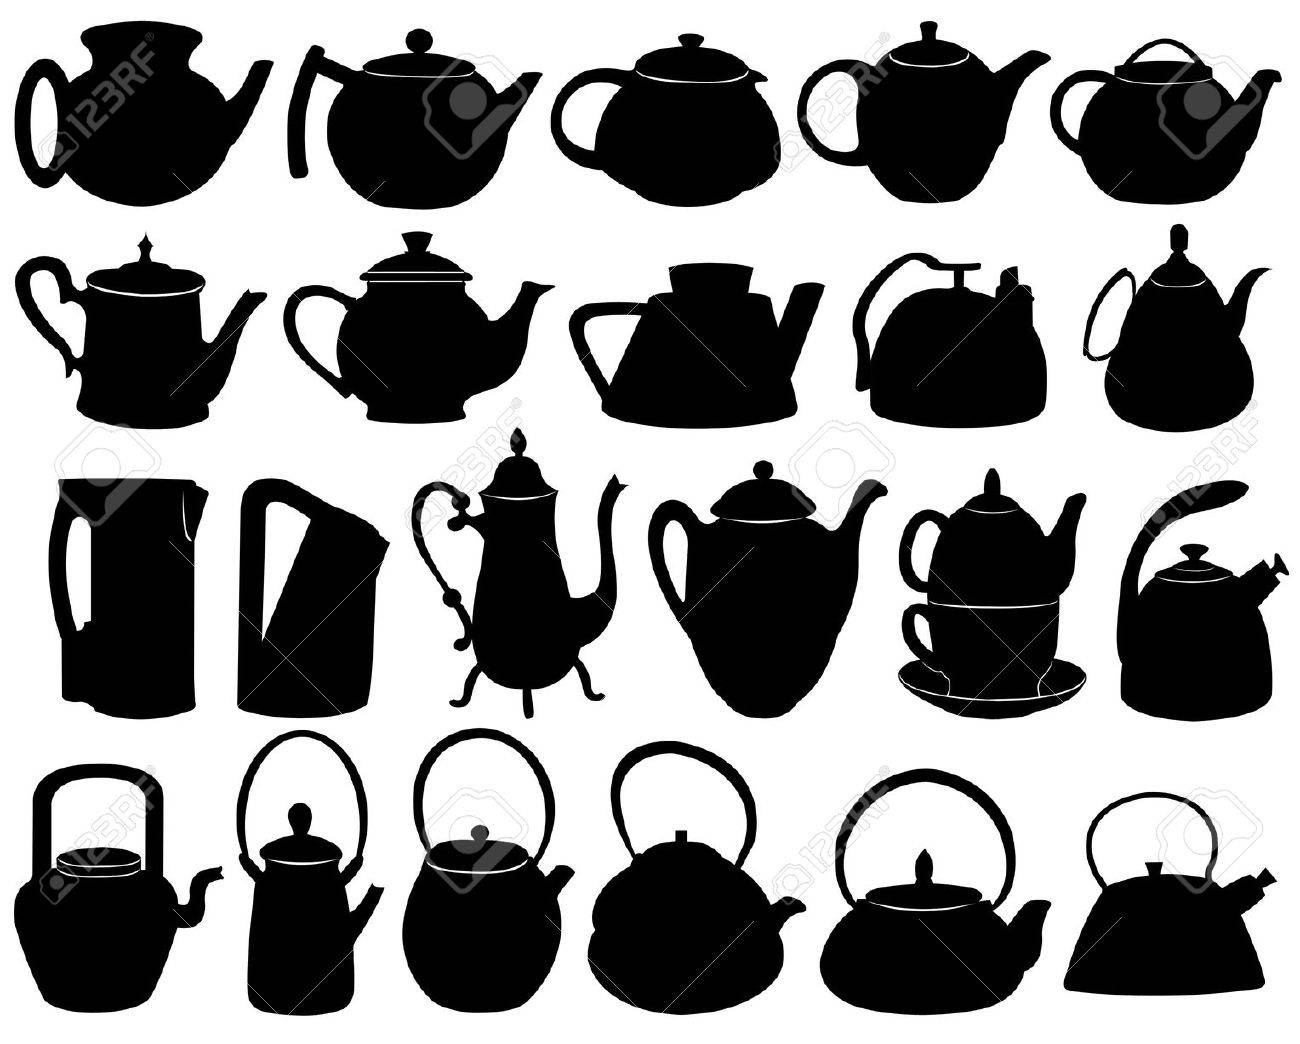 Teapots isolated on white - 10989660